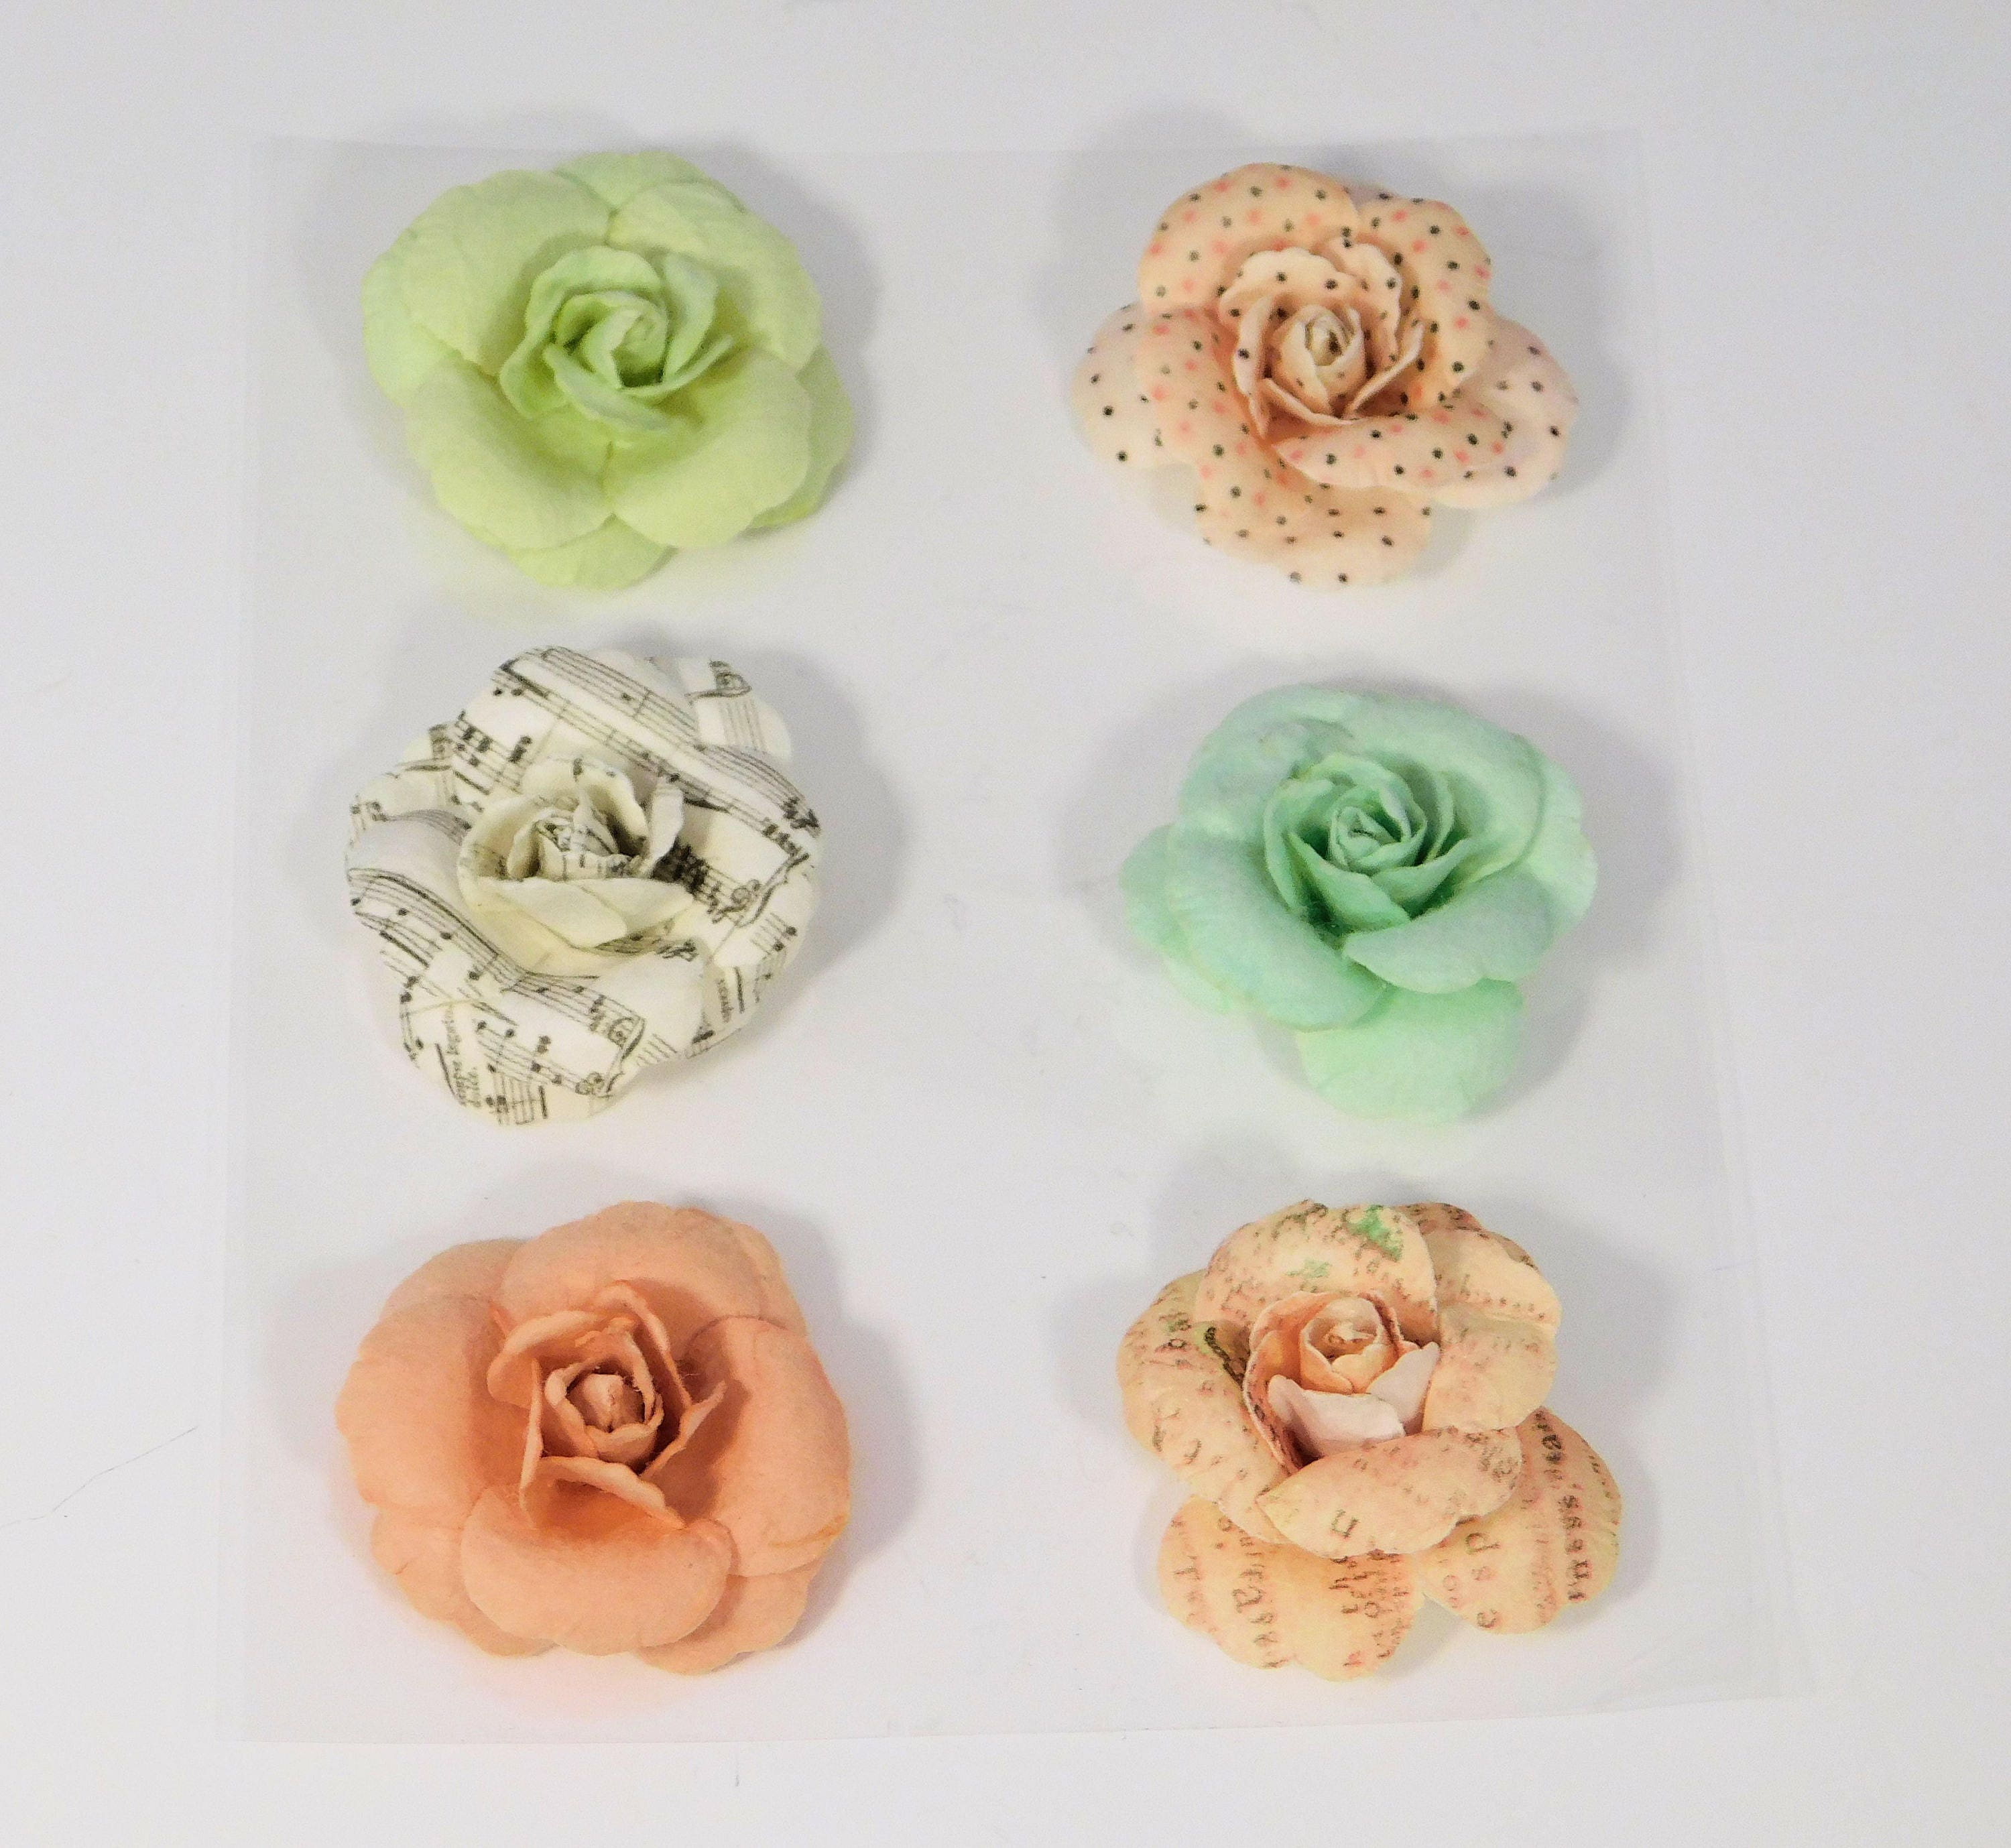 Paper Flowers Roses Polka Dots Pinks Wild Roses Crafting Scrapbooking Crafts Diy Floral Mint Lime Music Notes Printed Words